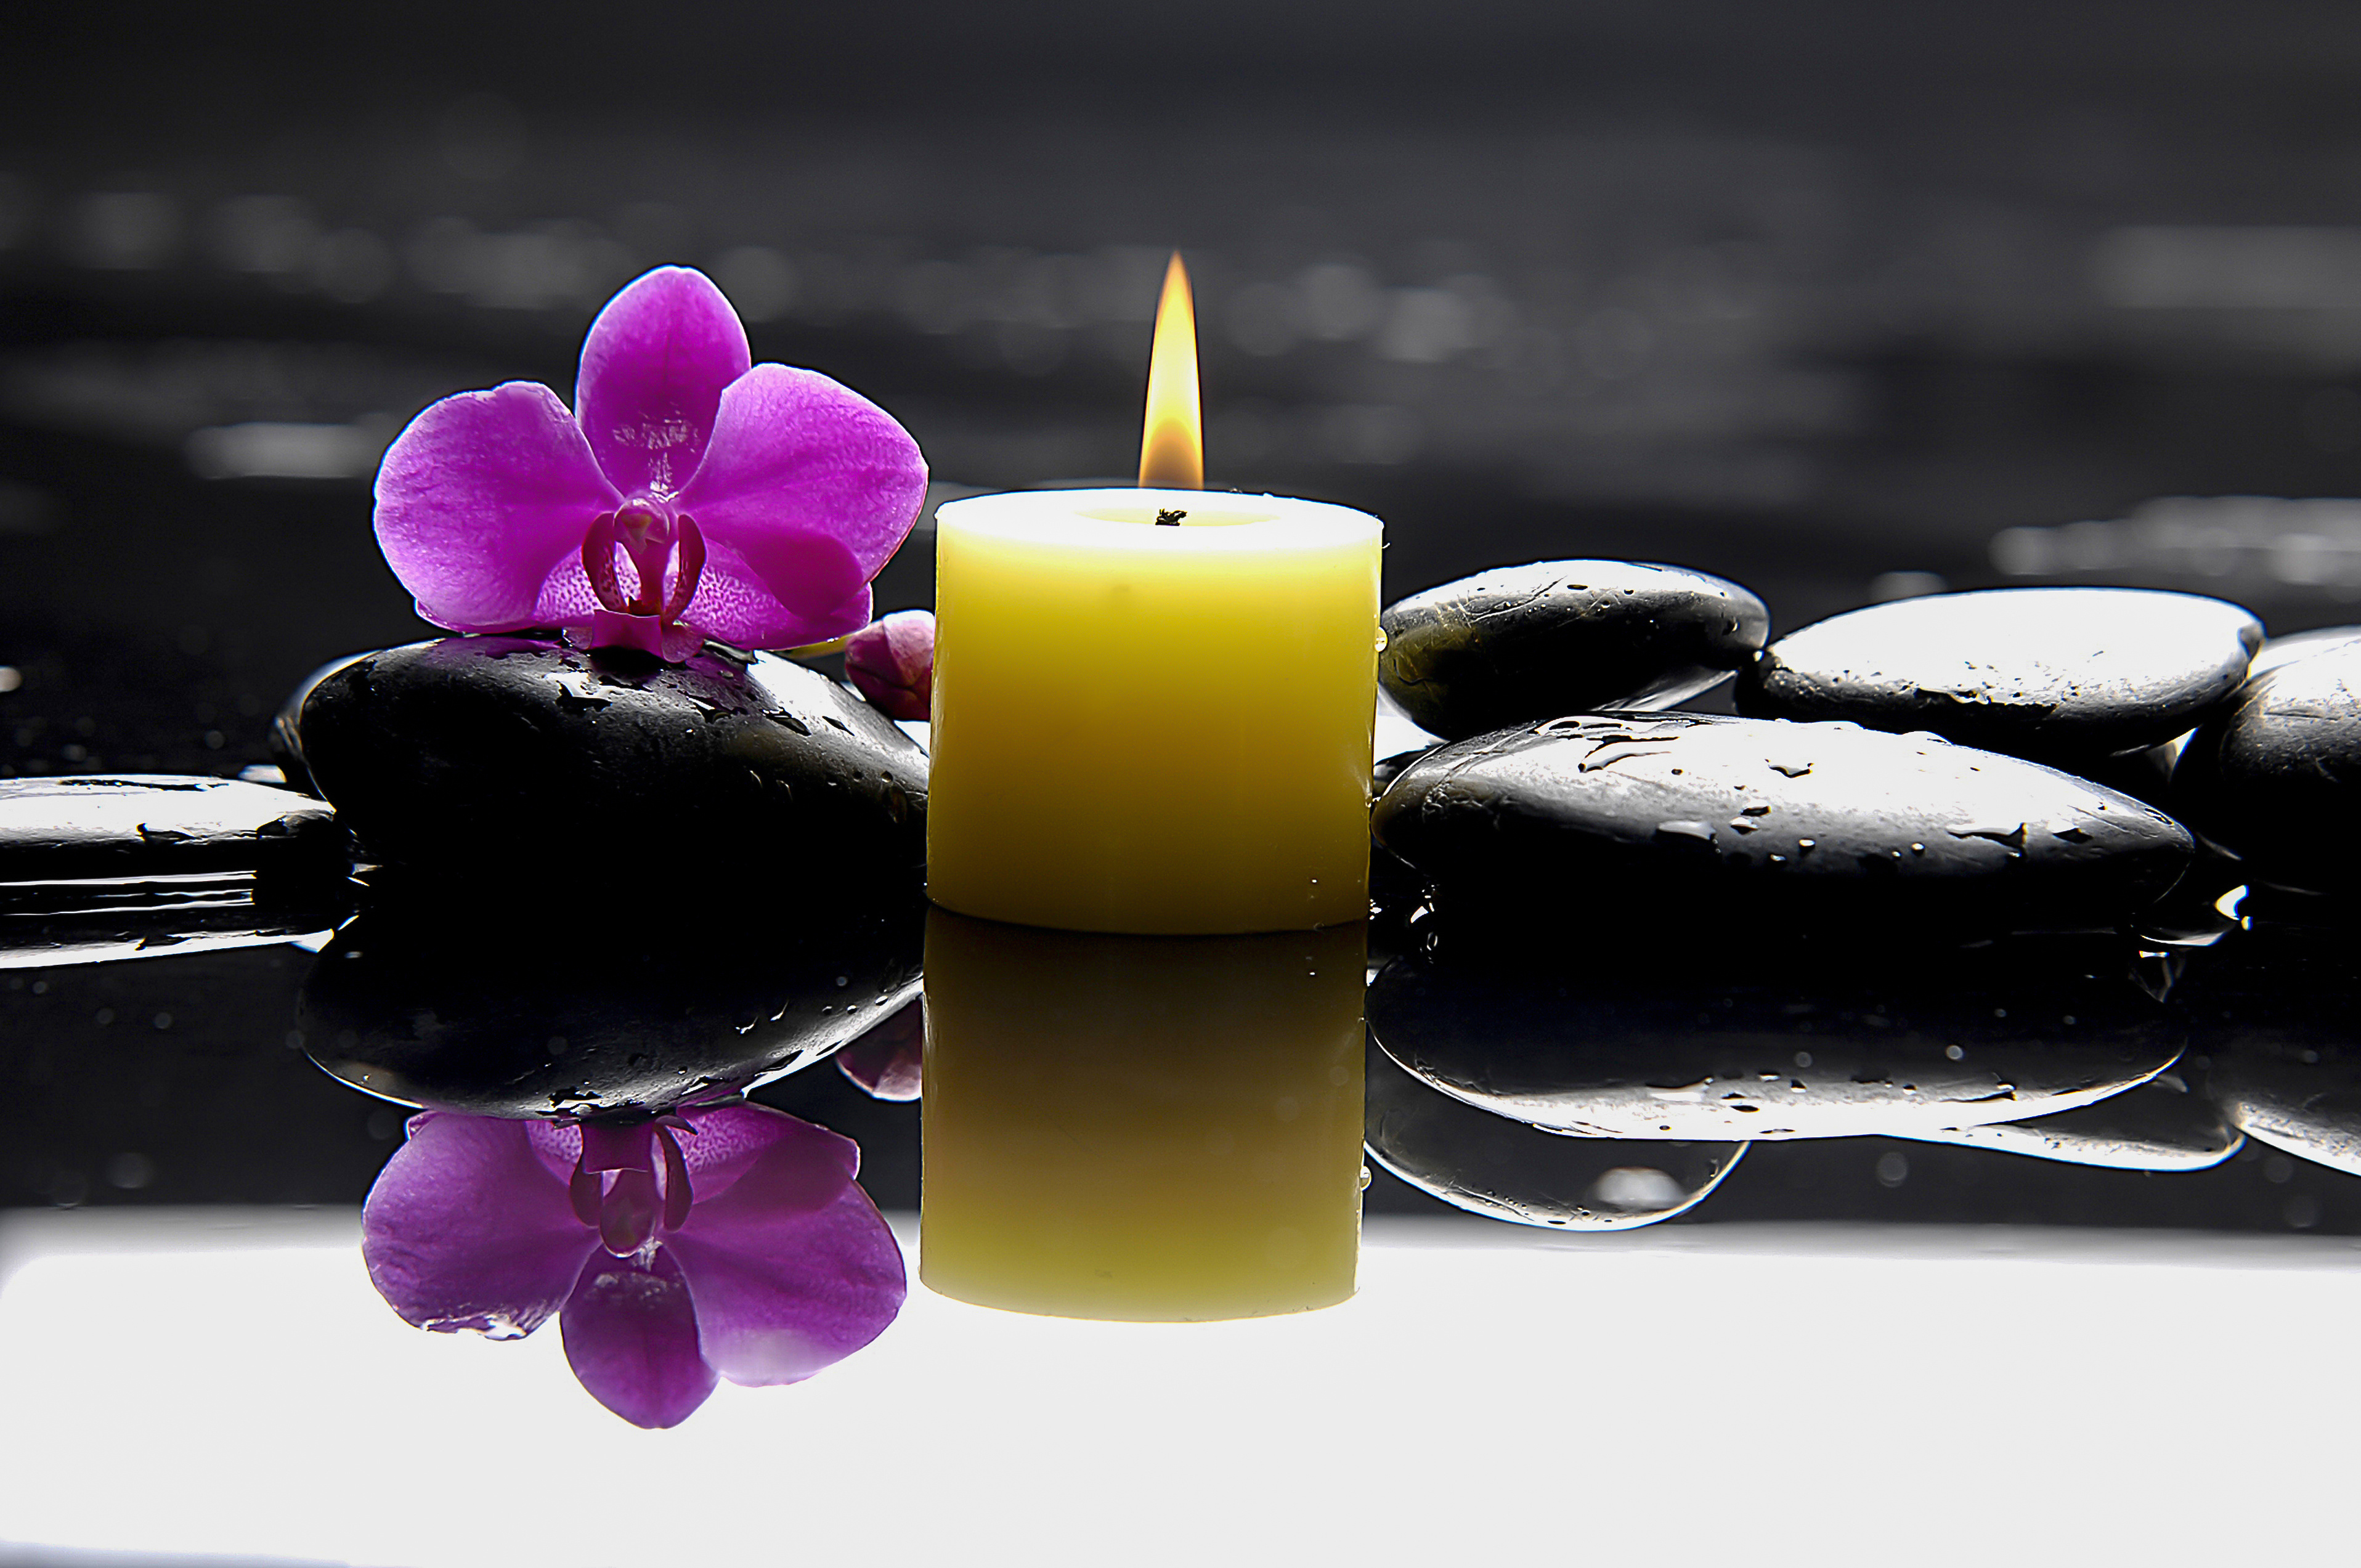 purple orchid and yellow candle on black stones and water